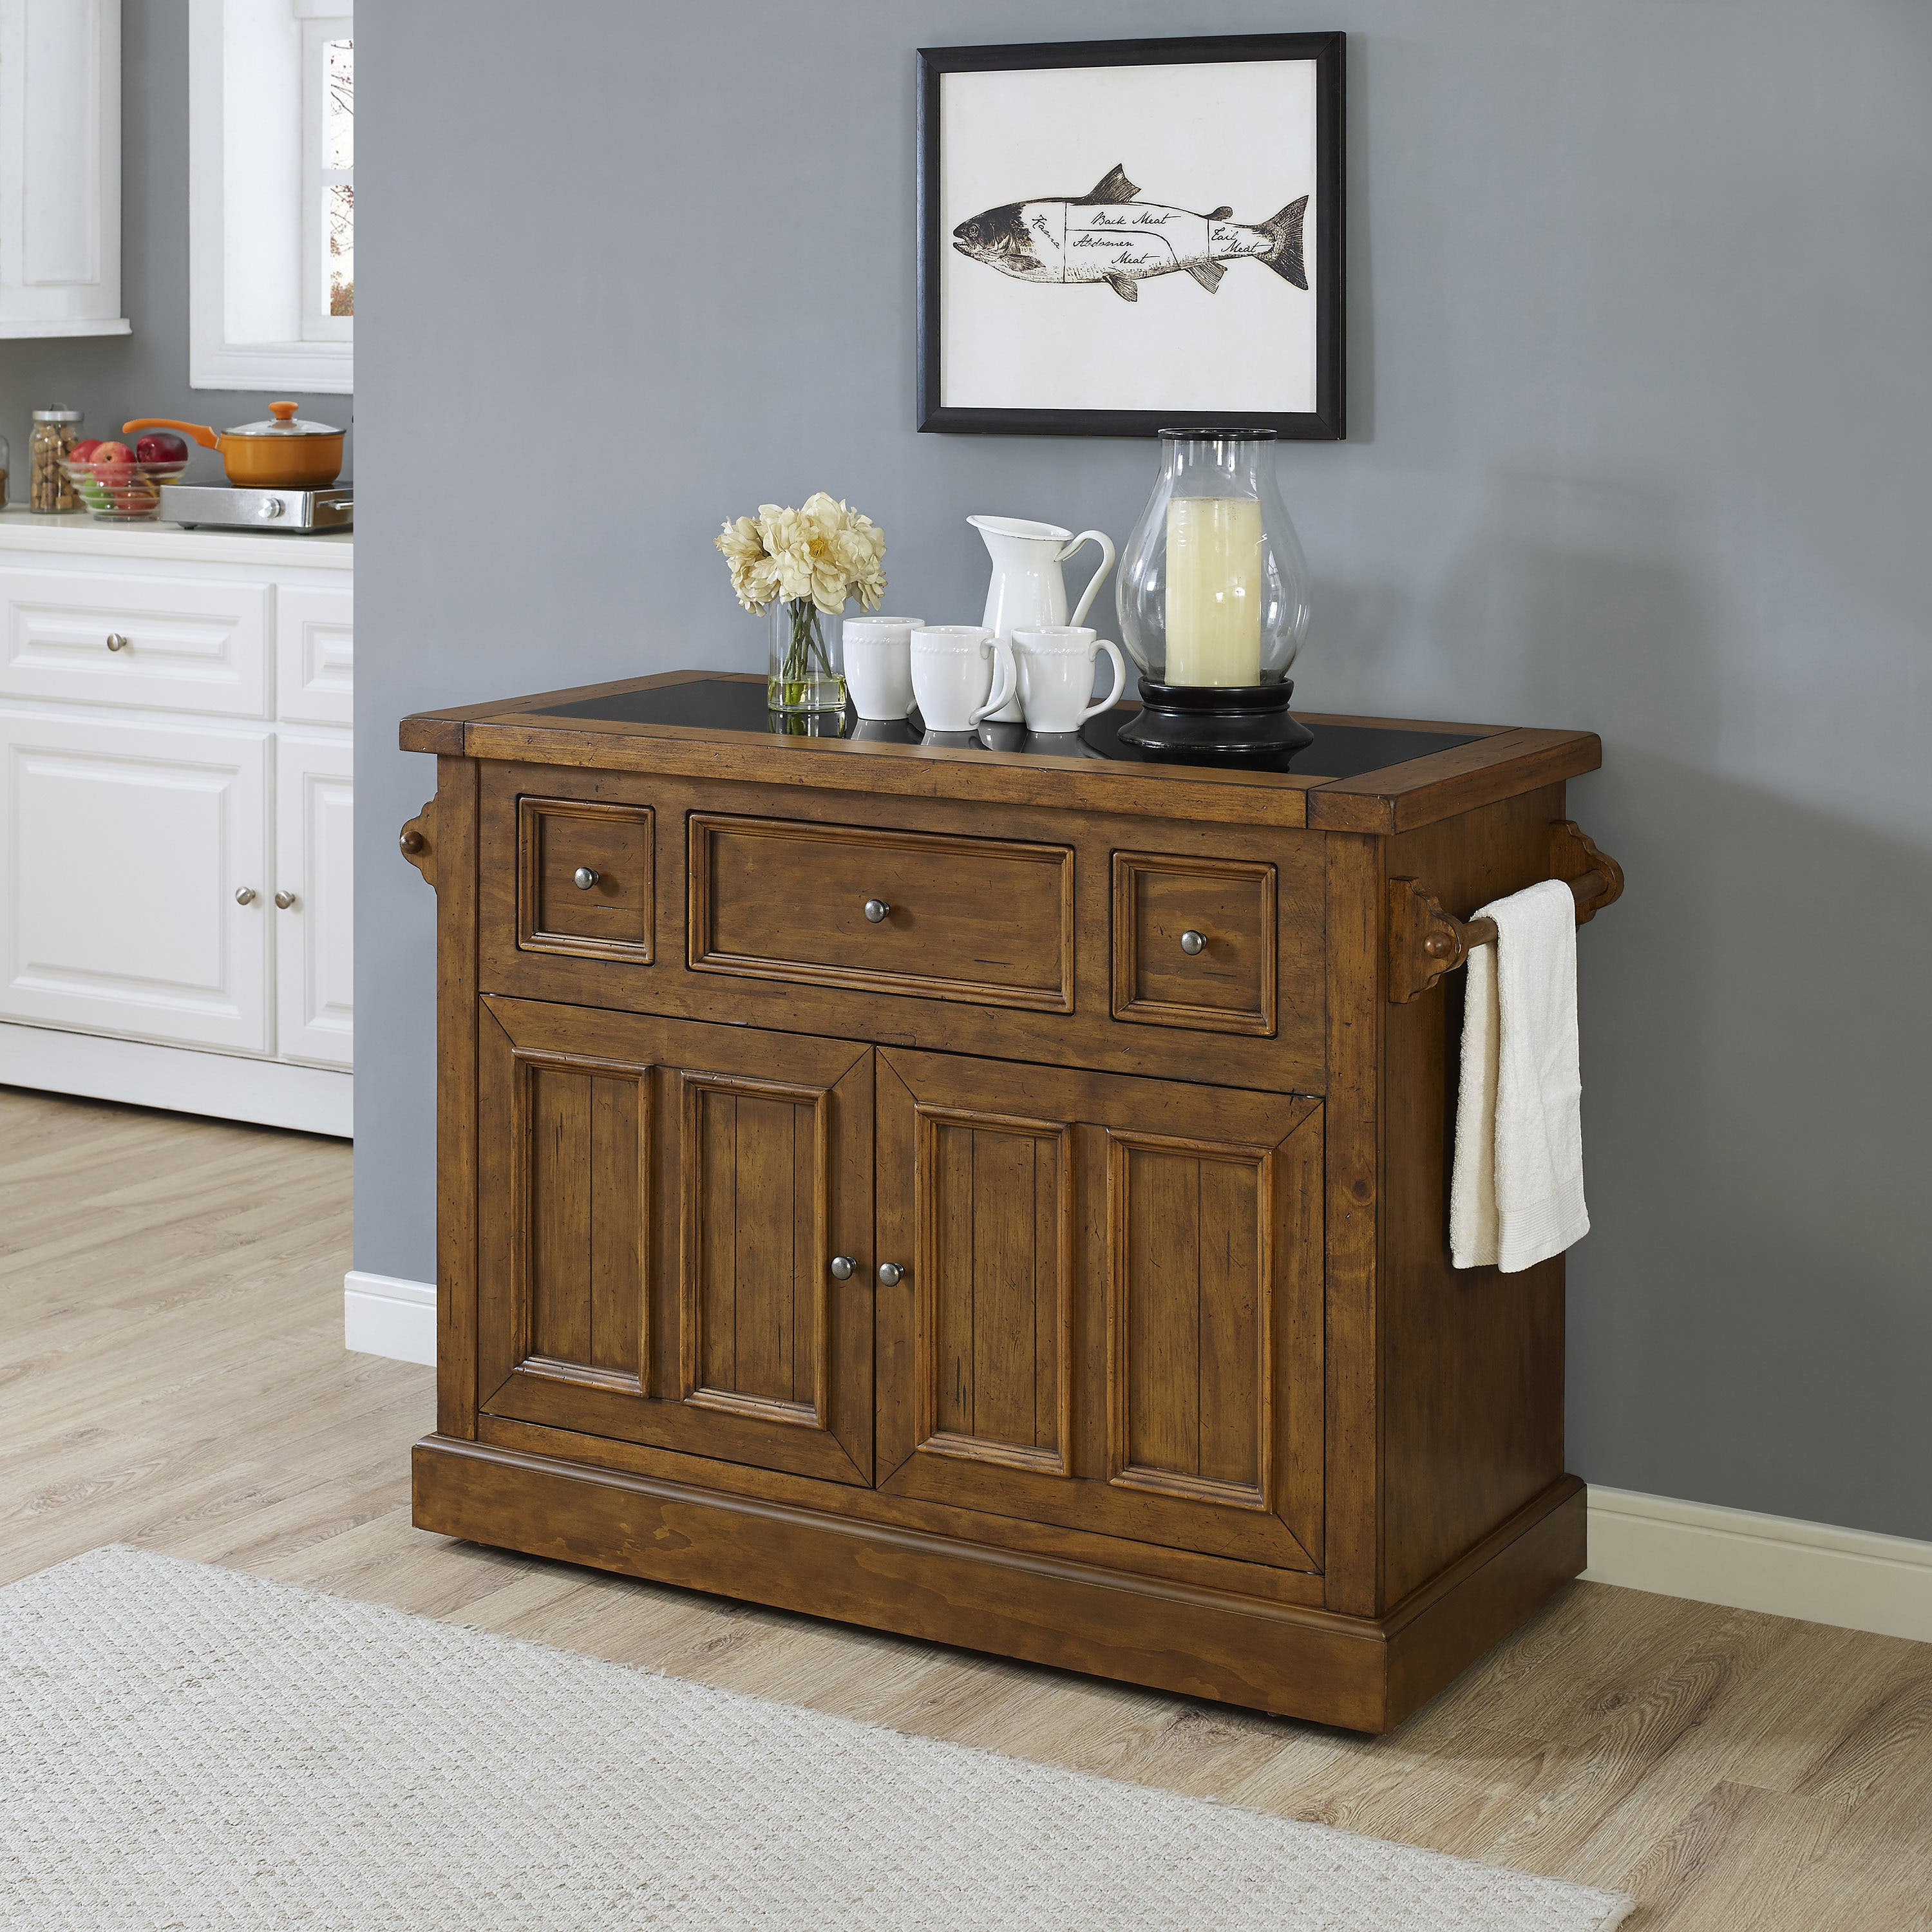 buy large kitchen island buy kitchen islands at overstock our best 16551